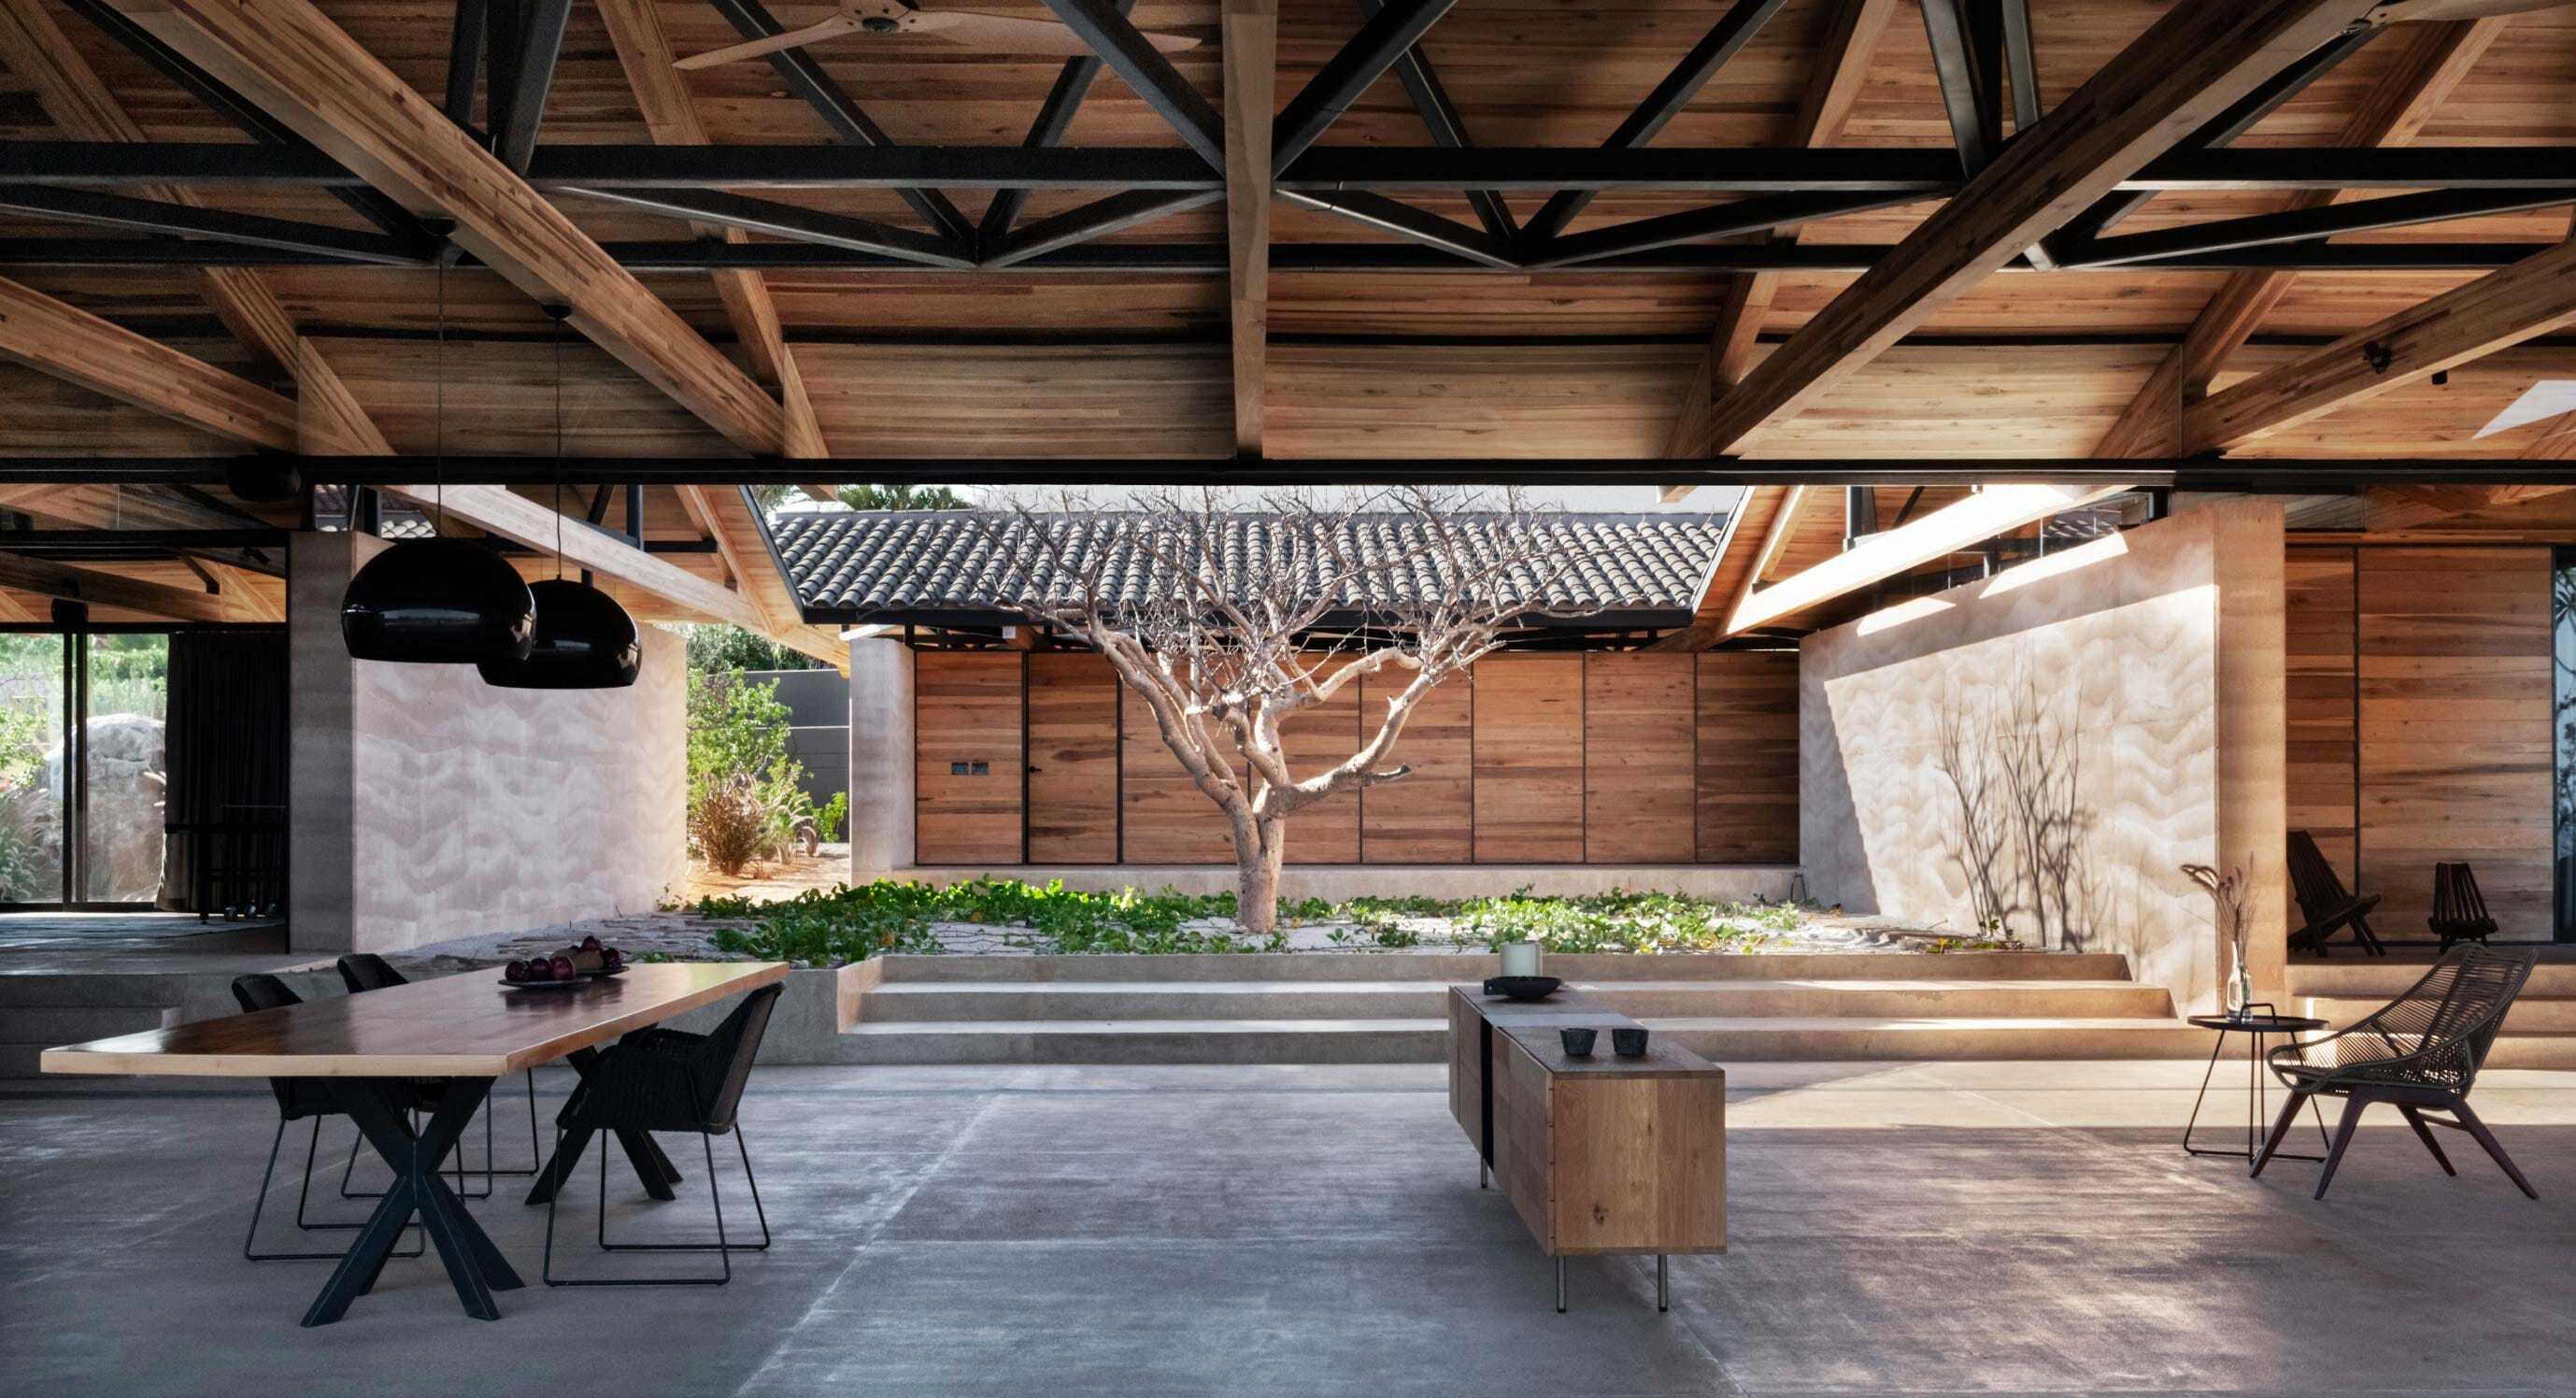 Dellekamp's Cabo House Shows The Strength of Mexican Architecture